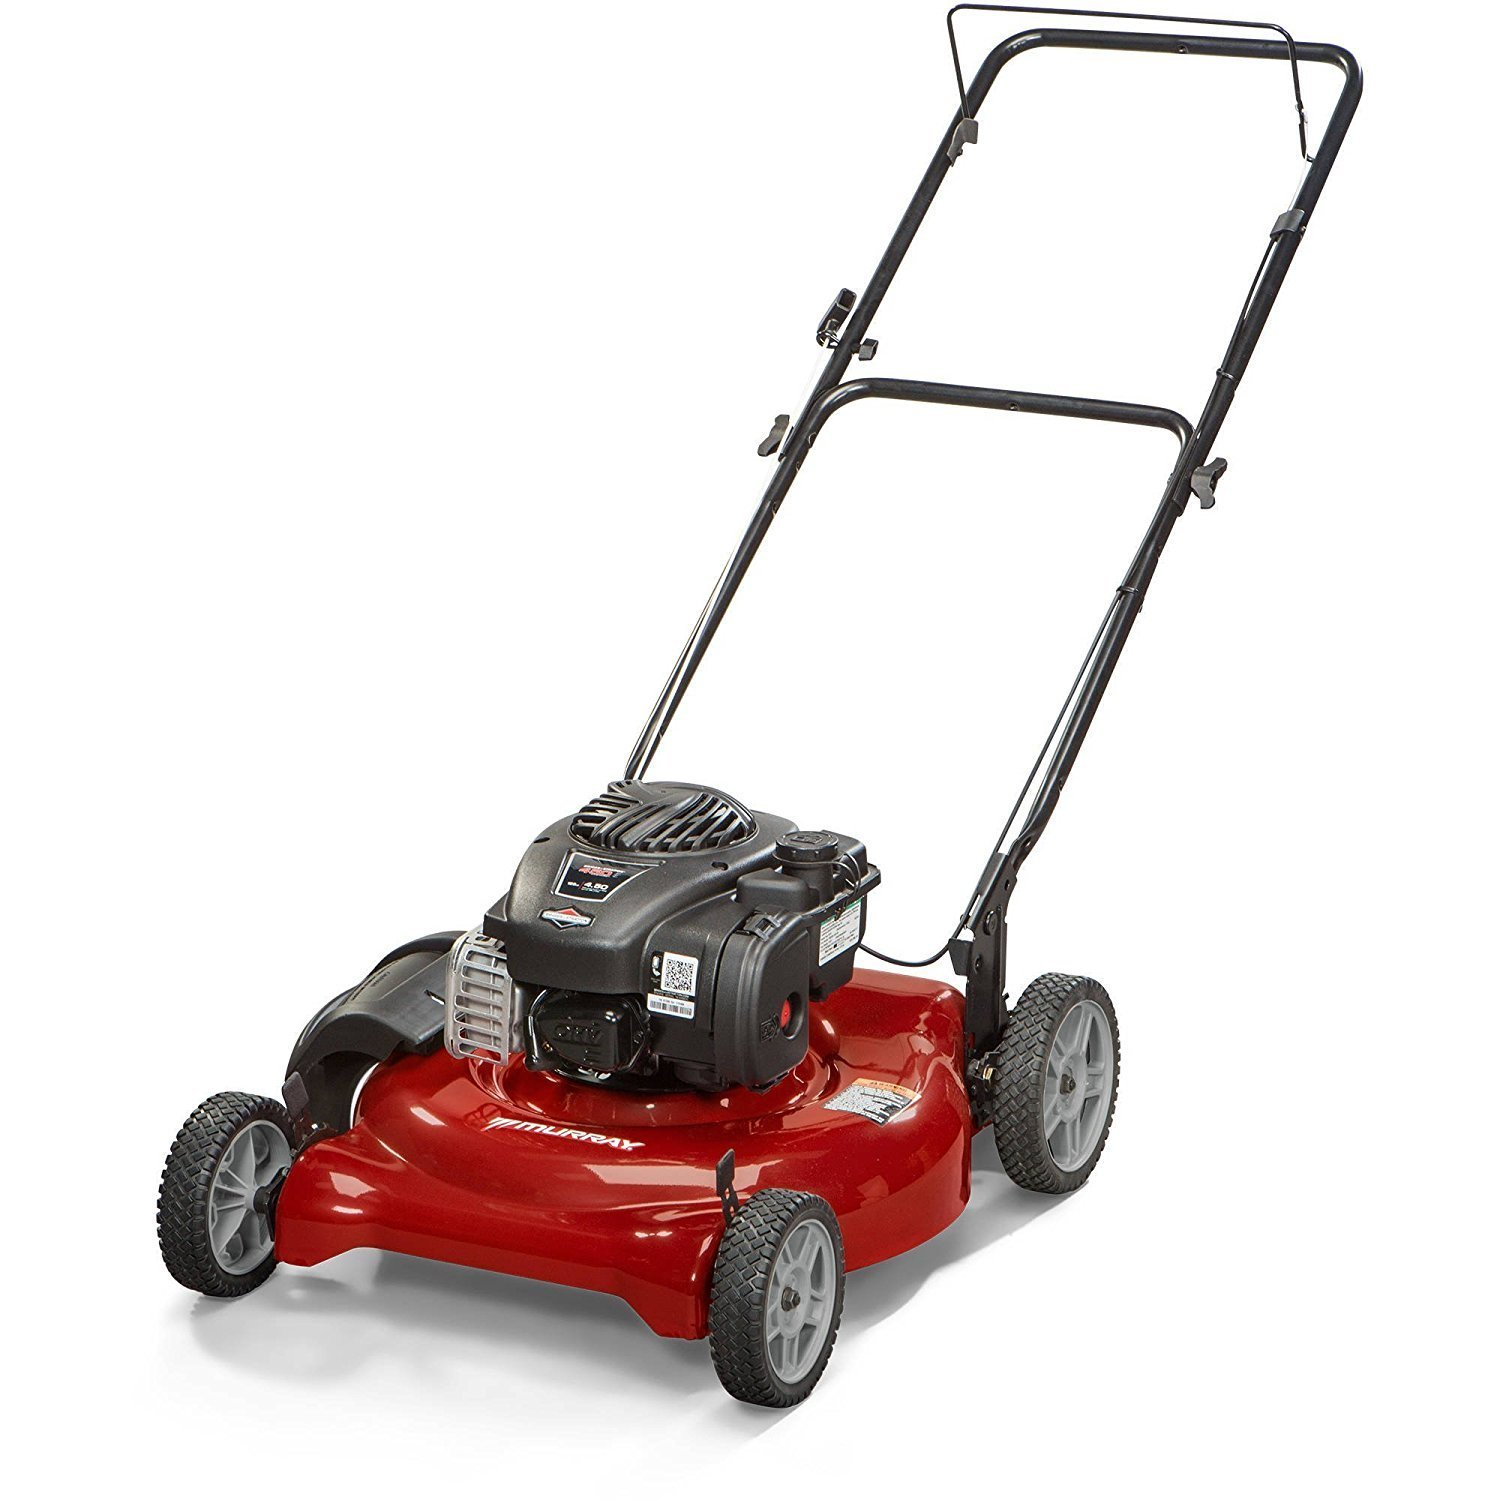 Murray Lawn Mowers Battery : Murray self propelled lawn mower home furniture design